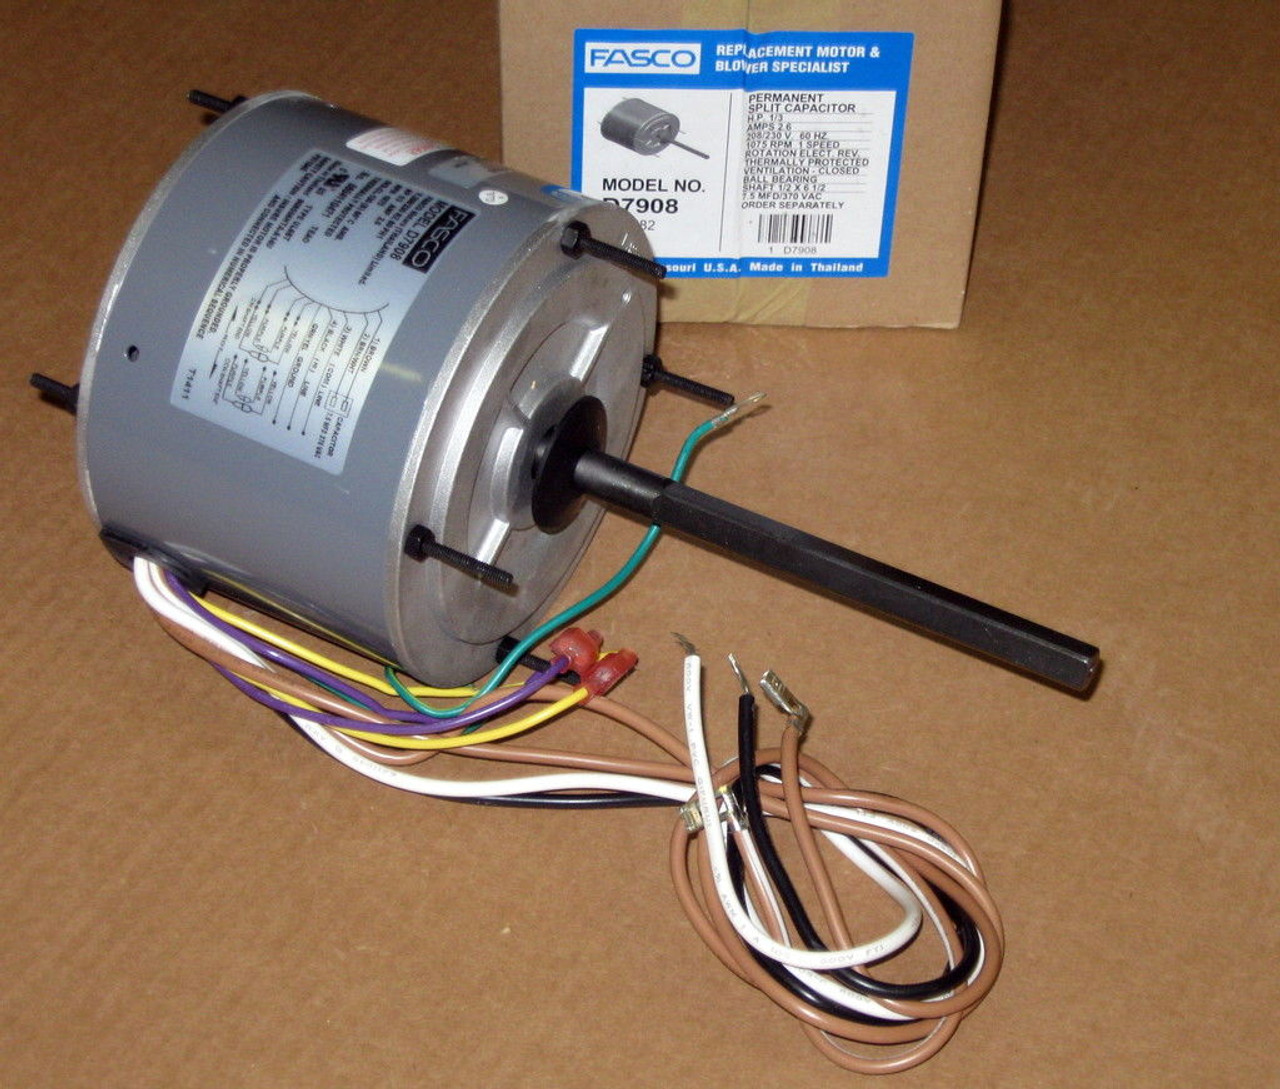 d7908 fasco 1/3 hp 1075 rpm ac air conditioner condenser fan motor tenv -  mccombs supply co inc  mccombs supply